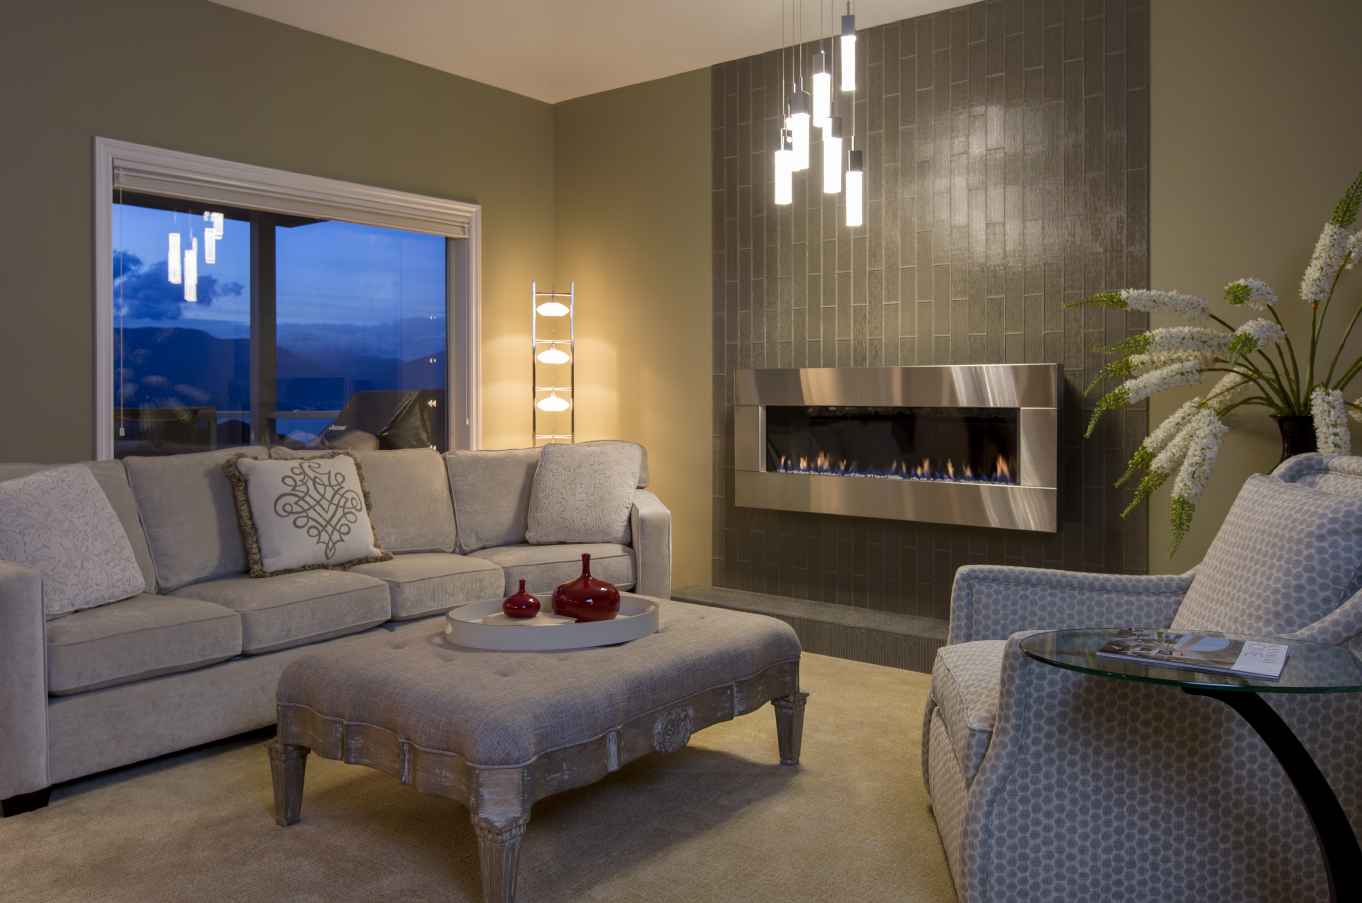 Interior Design Kelowna Full Home Design reative ouch ... - ^